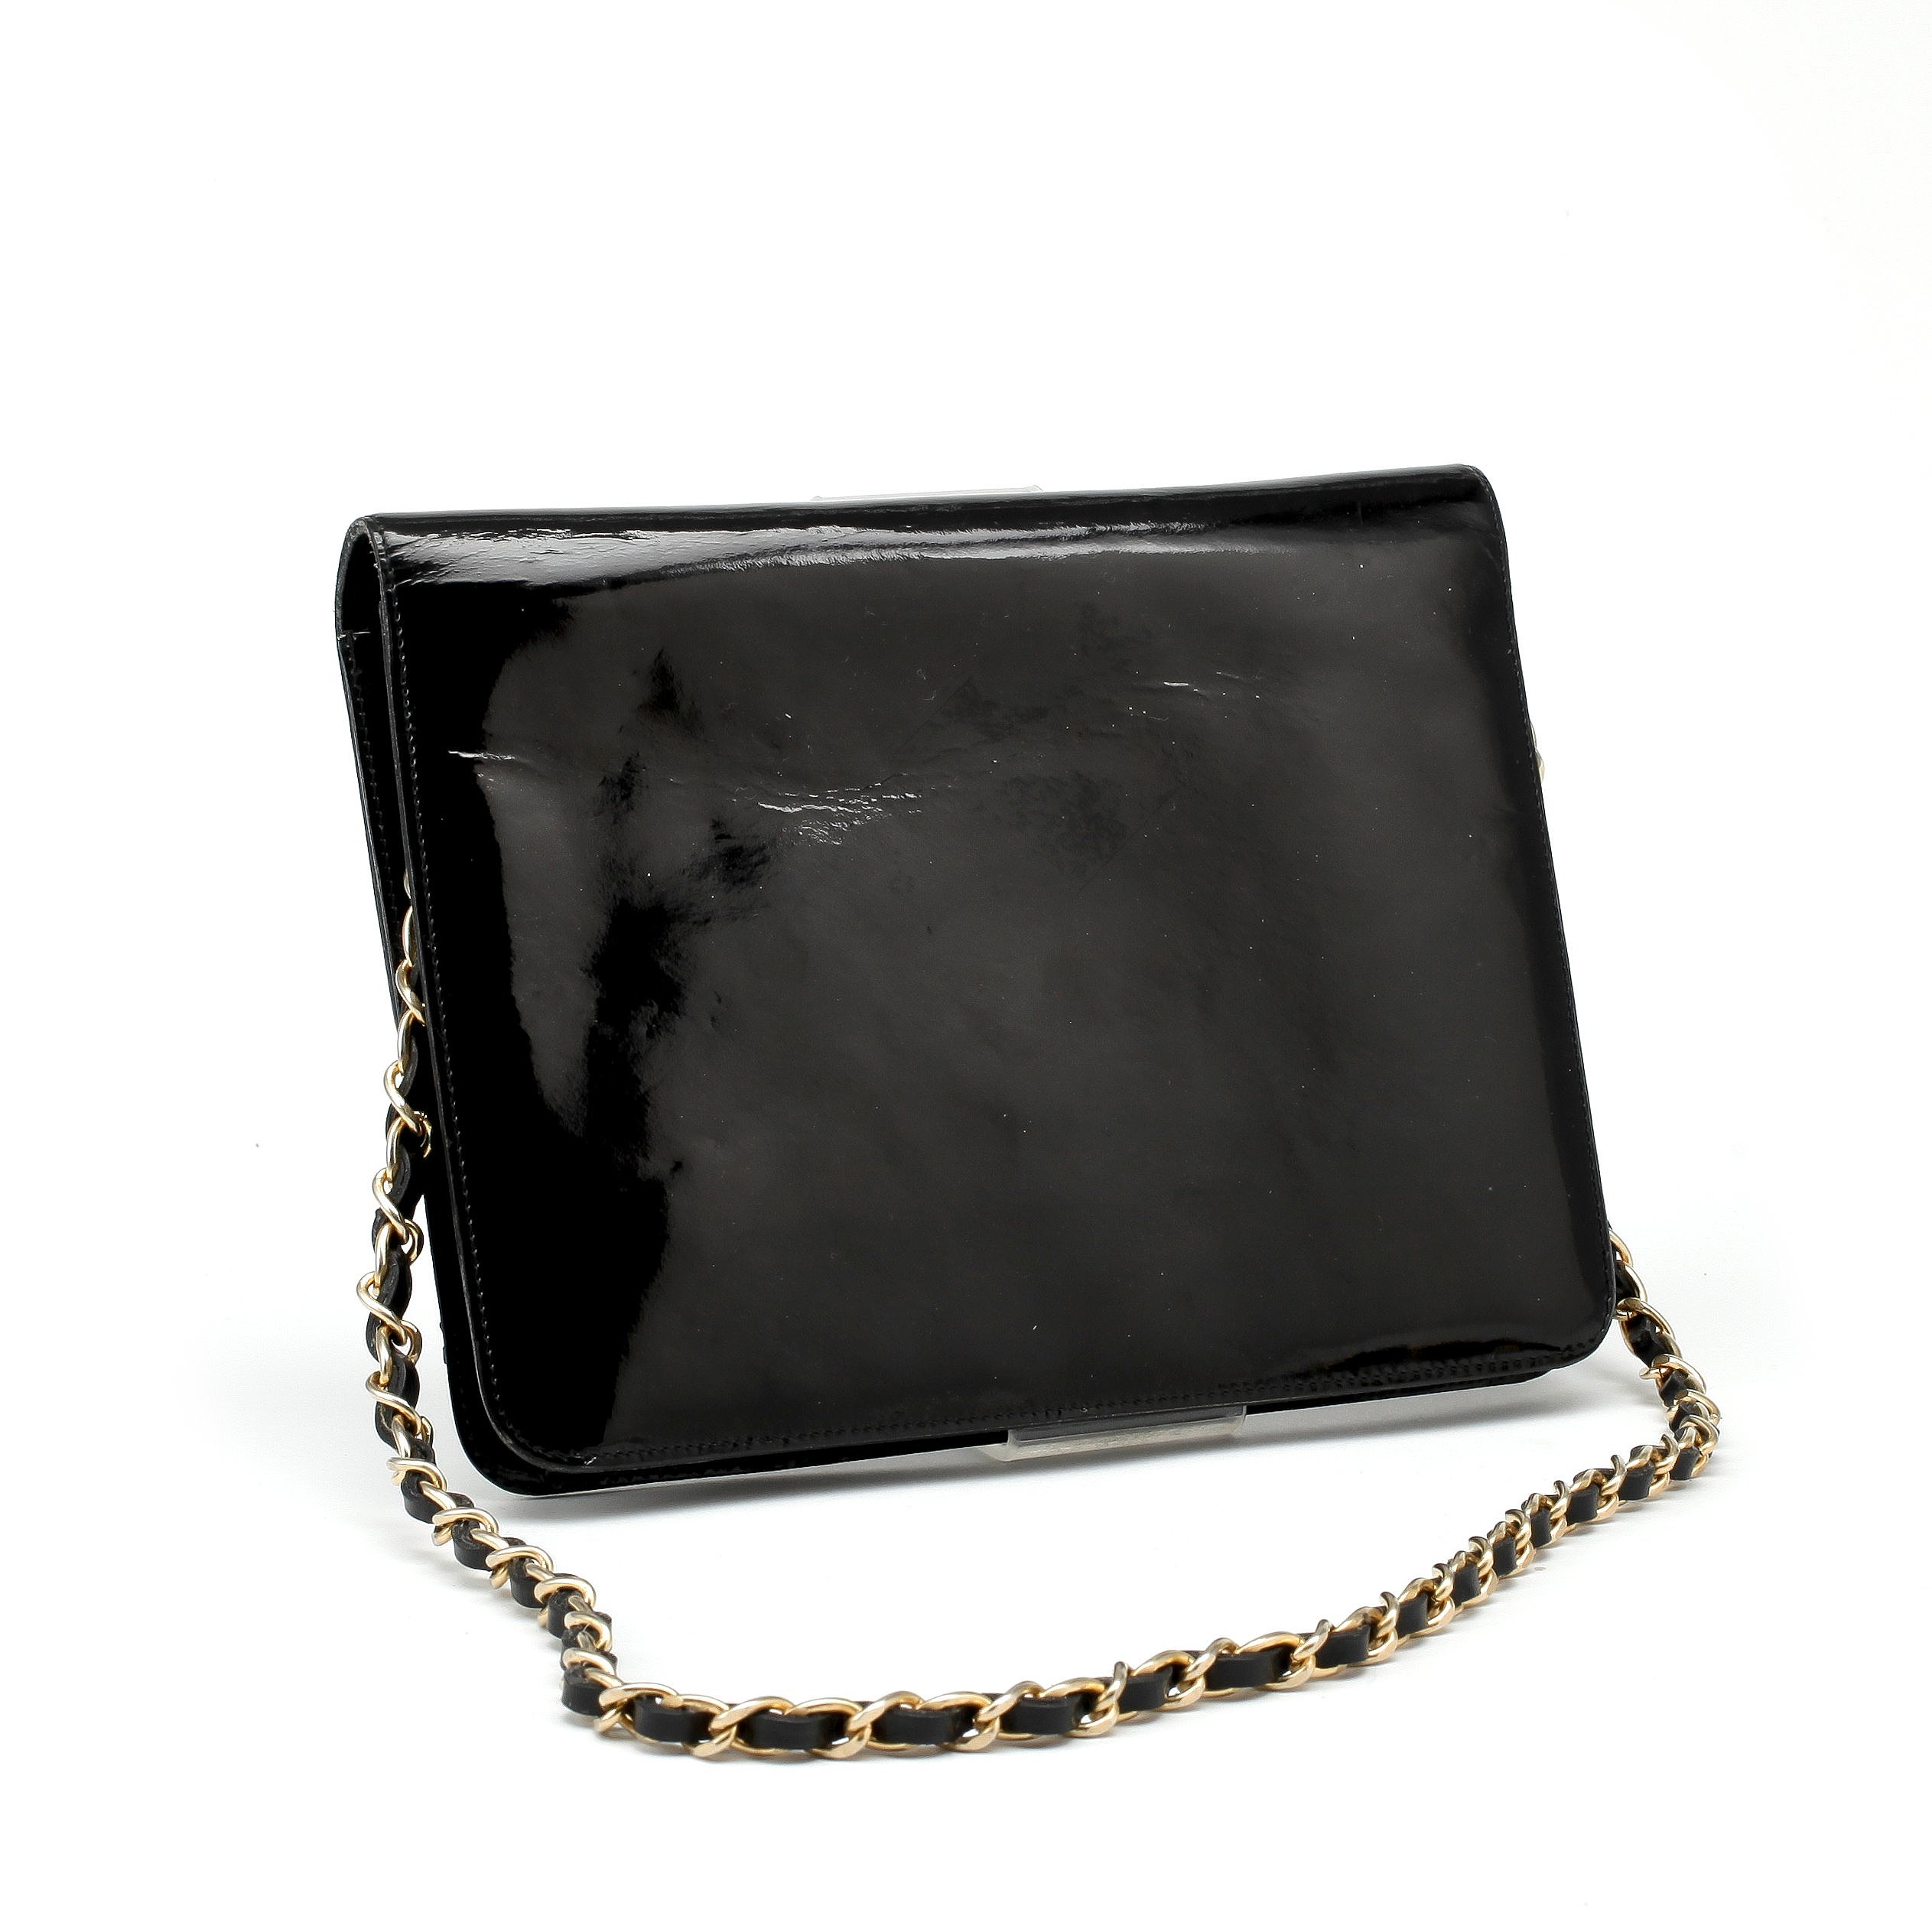 85712f5be688 CHANEL, a black patent leather flap bag. - Bukowskis